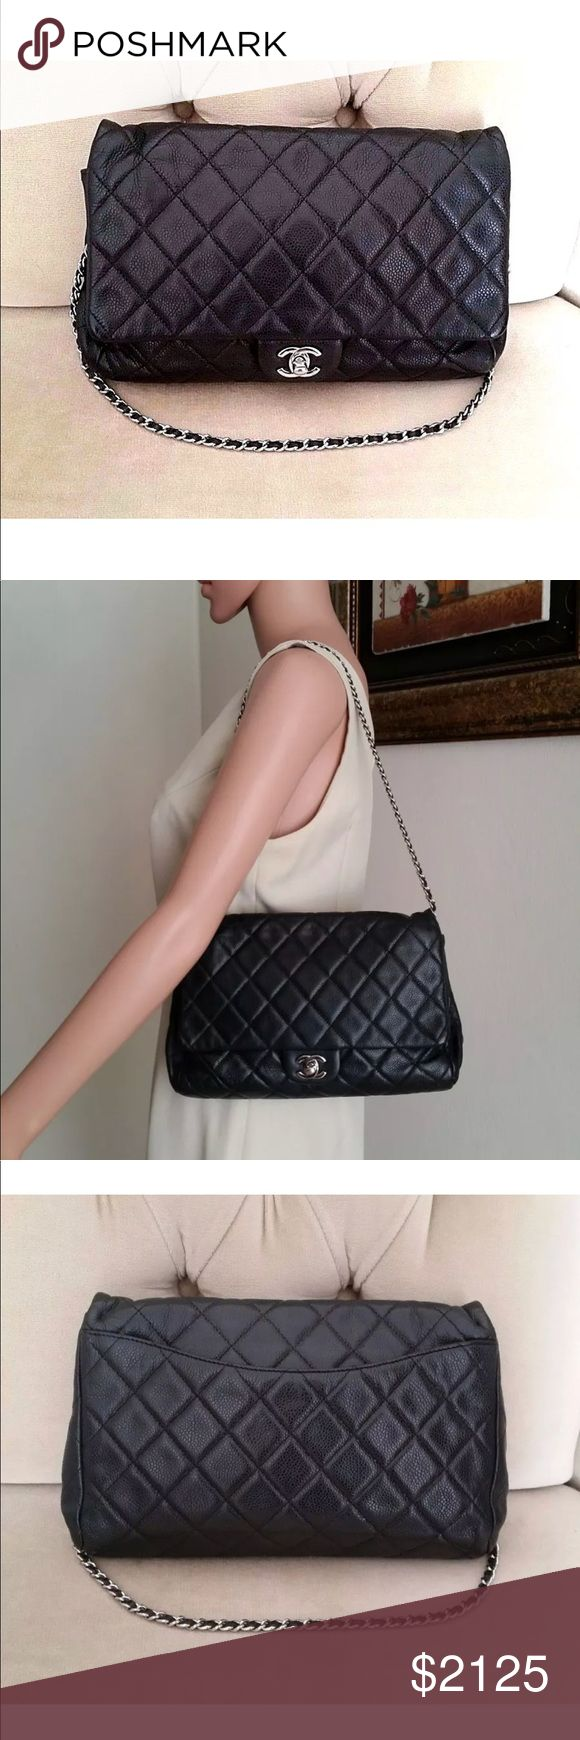 """Chanel Black Quilted Glazed Caviar Handbag 100% authentic Chanel light black Quilted glazed caviar leather chain flap clutch bag. Made from caviar leather and features the silver tone """"CC"""" turn lock closure. The versatile chain strap can be worn on the shoulder or tucked in to be carried as a clutch. Current retail price: $3,100. The bag is in good condition with some signs of easy wear on the inside. The exterior is in perfect condition. Date/ authenticity code: 15316345. Authenticated by…"""